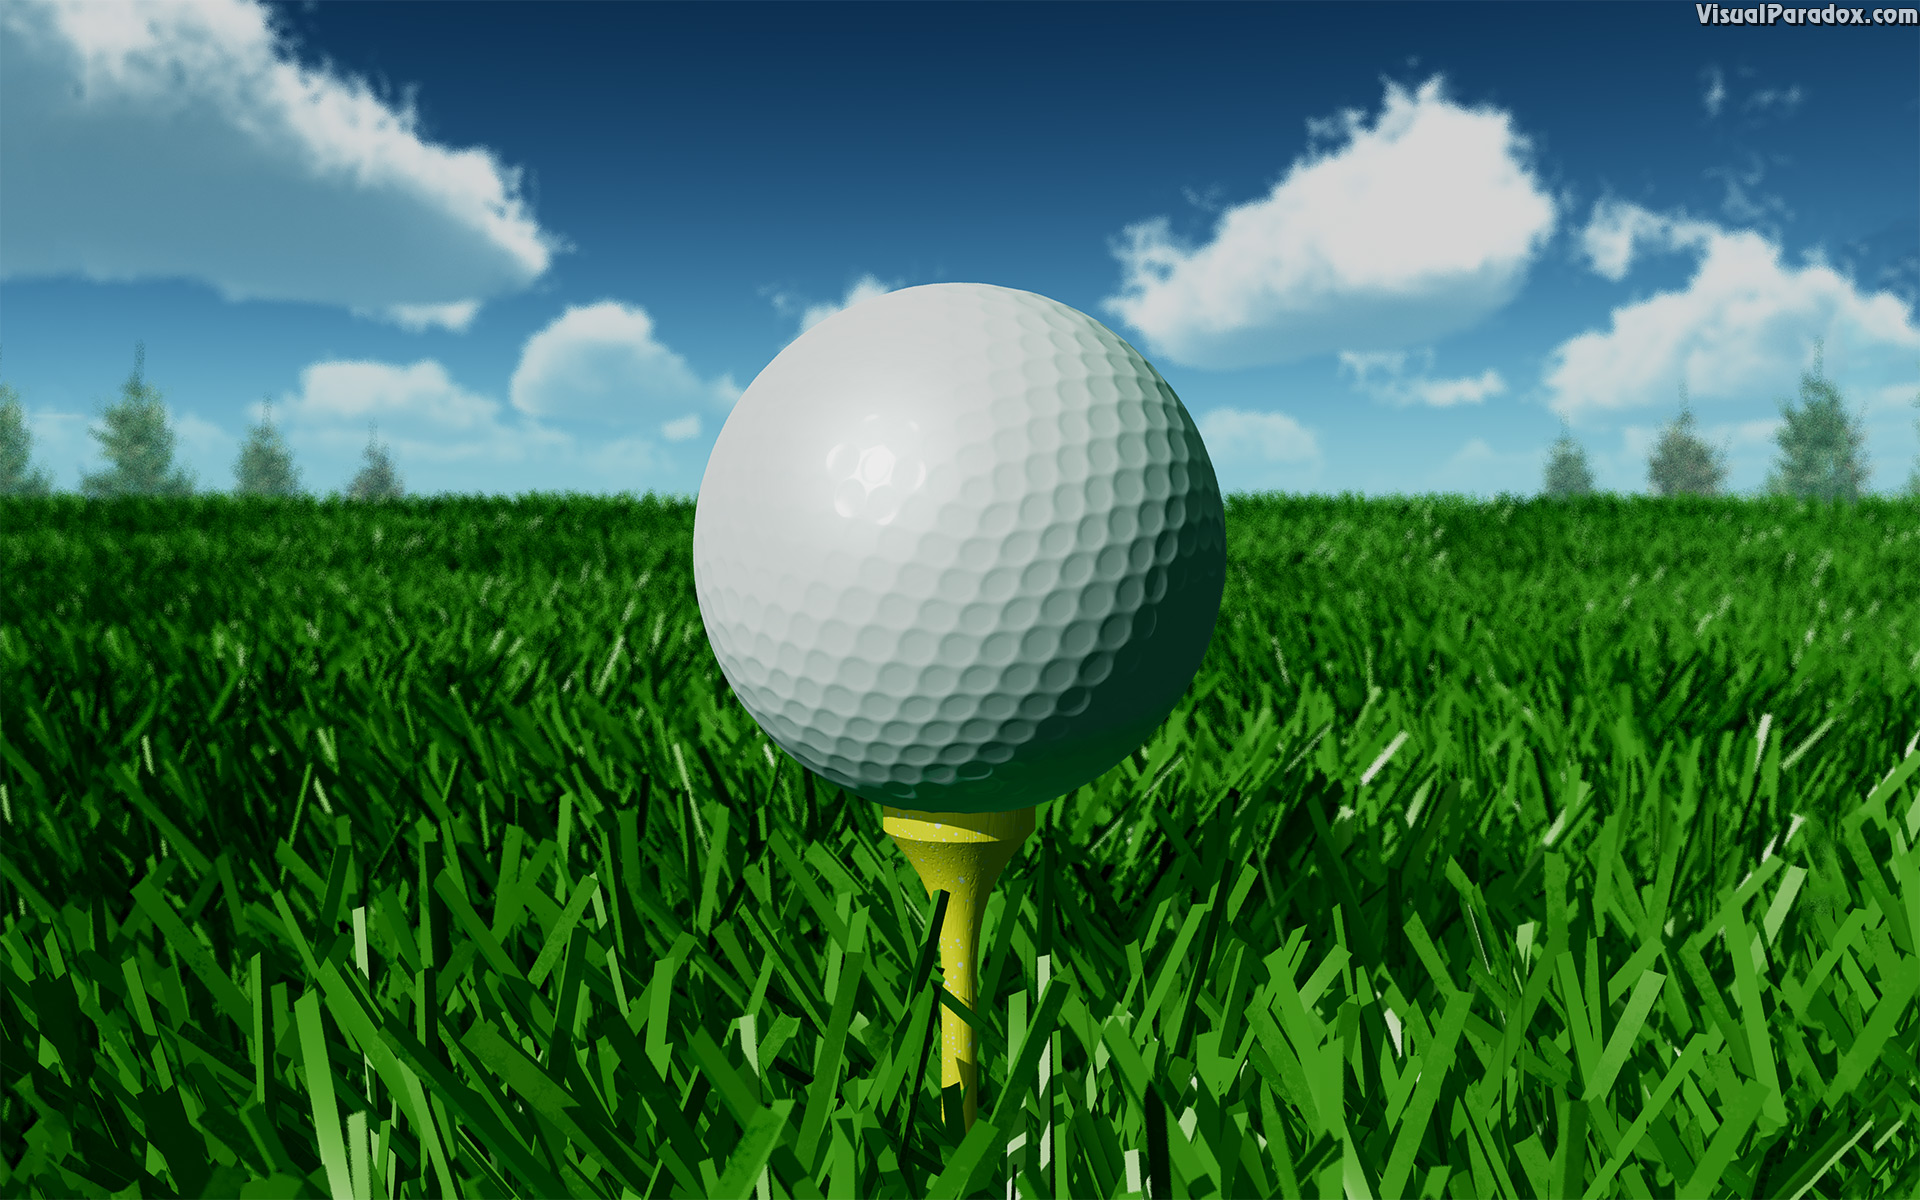 golf, golfball, tee, off, fairway, grass, day, closeup, ball, 3d, wallpaper